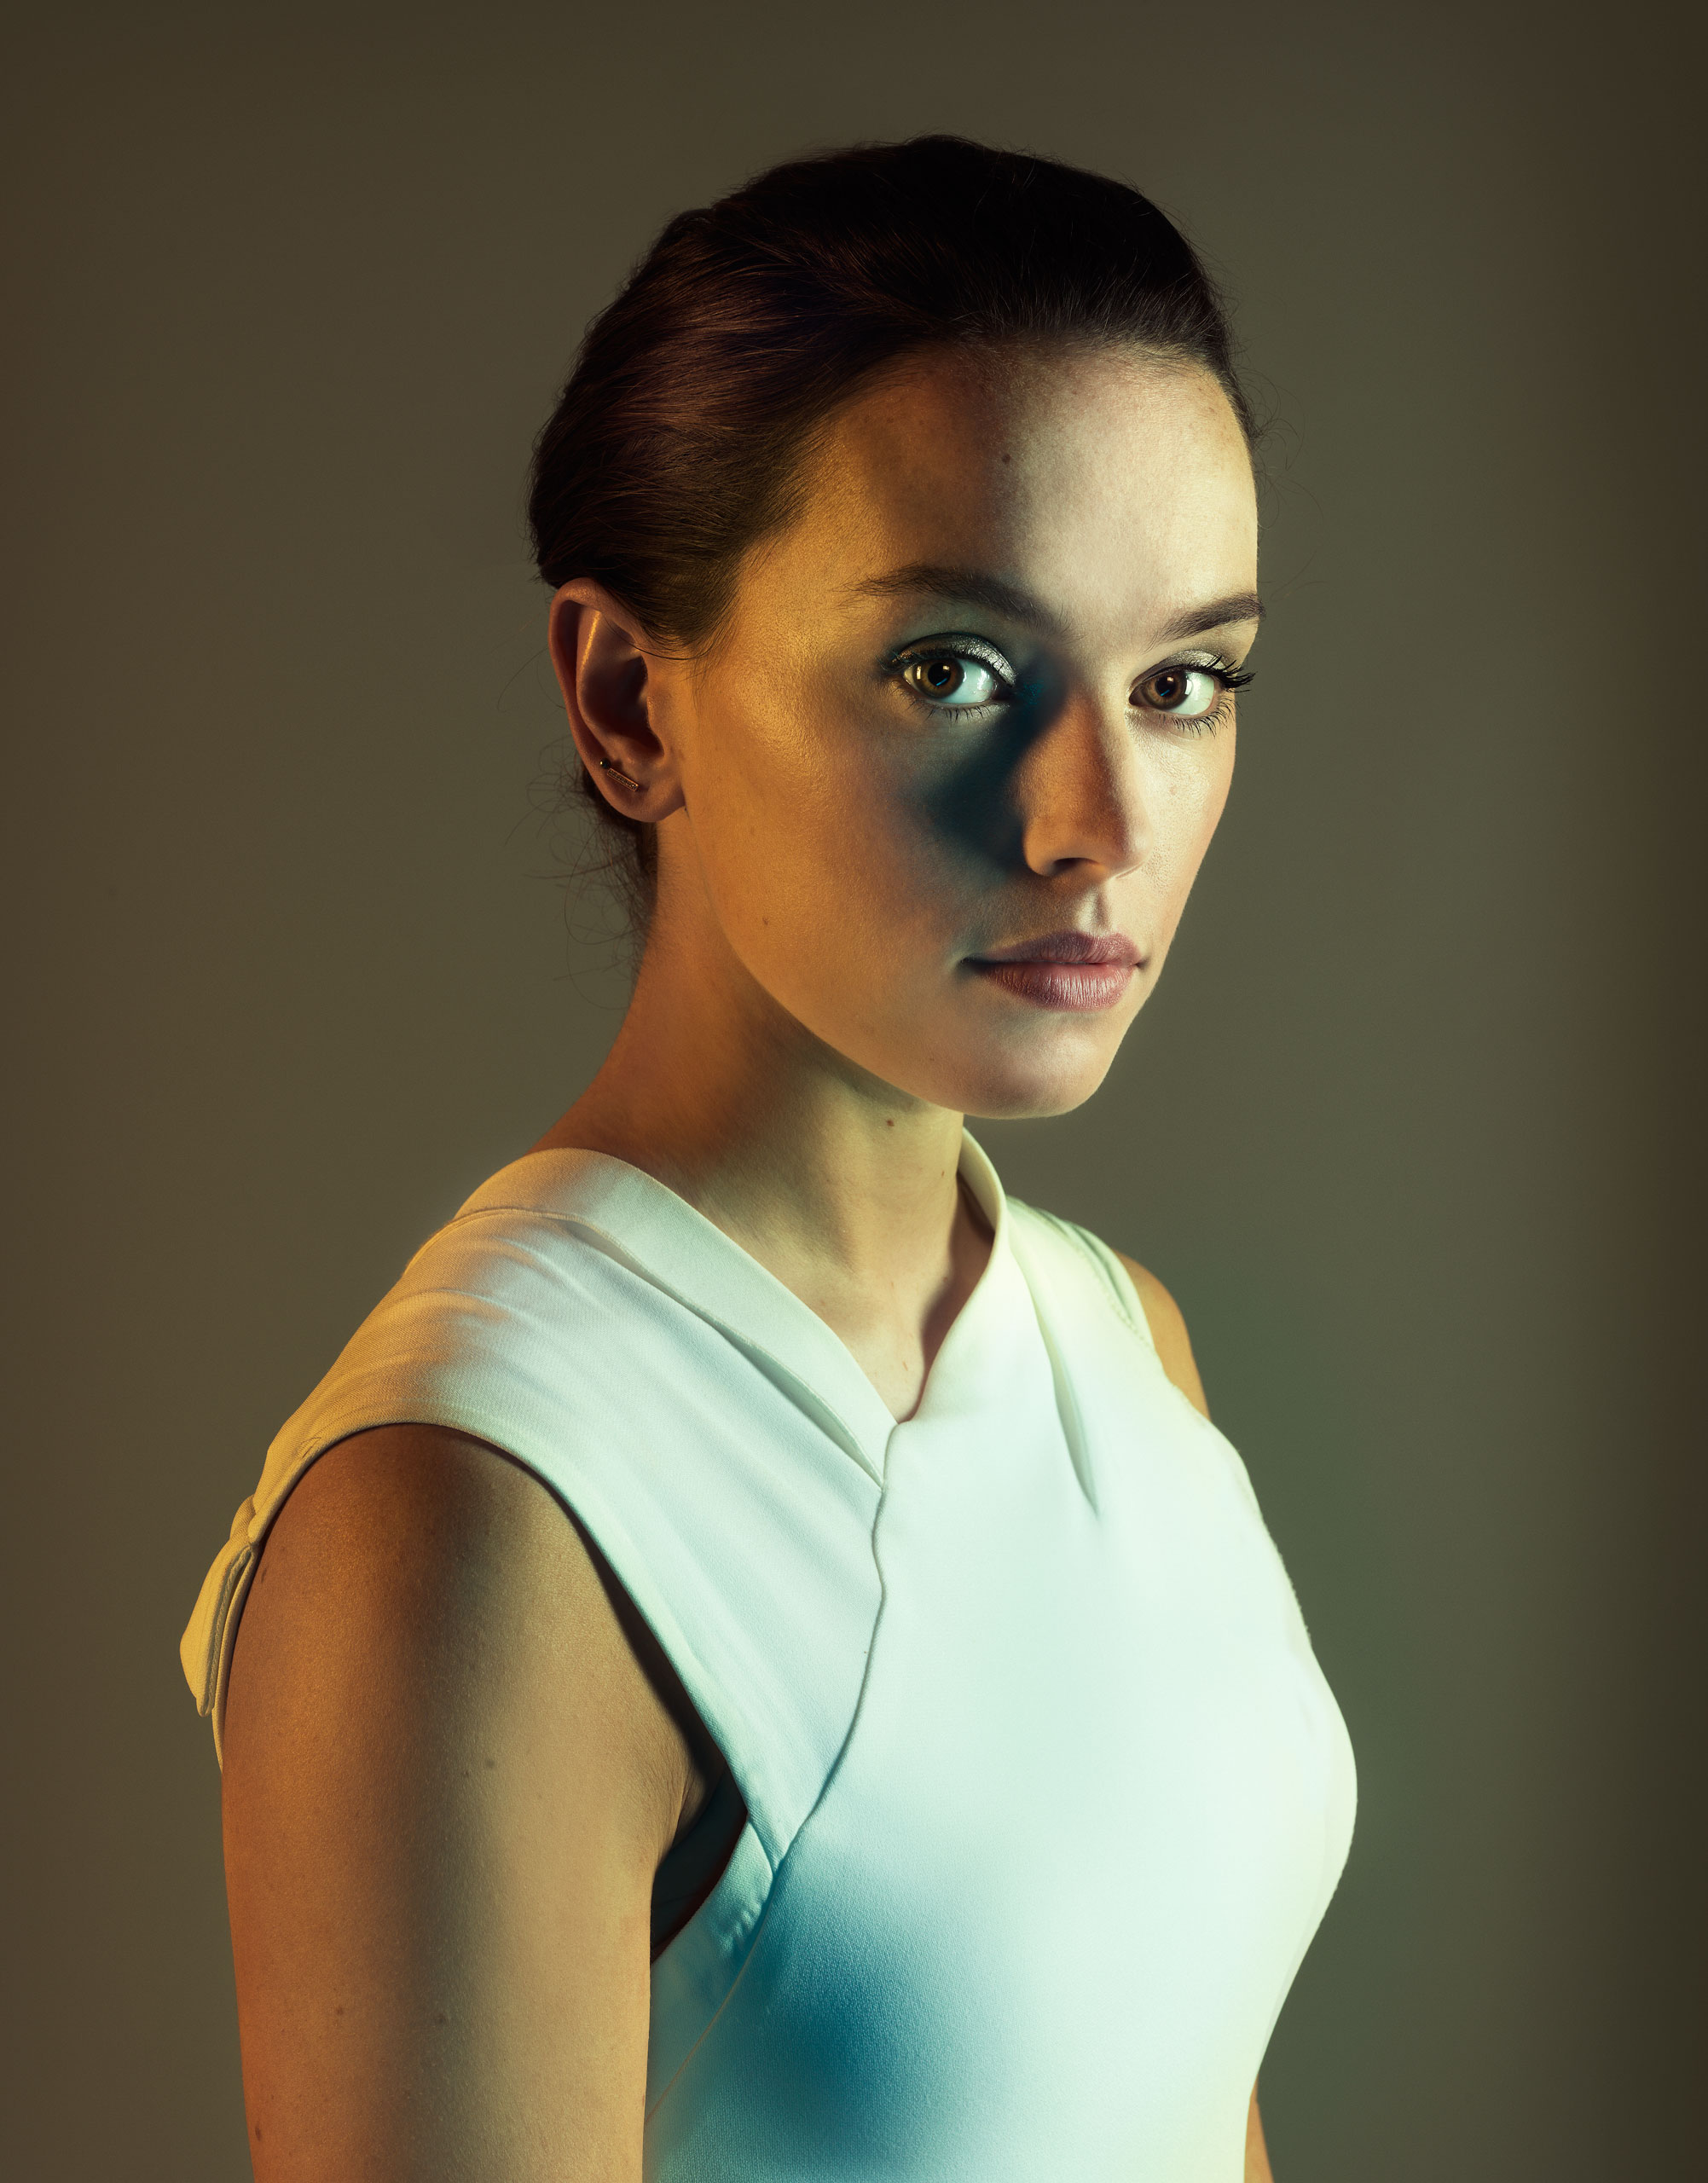 Daisy Ridley photographed for TIME in London, Oct. 29, 2015.